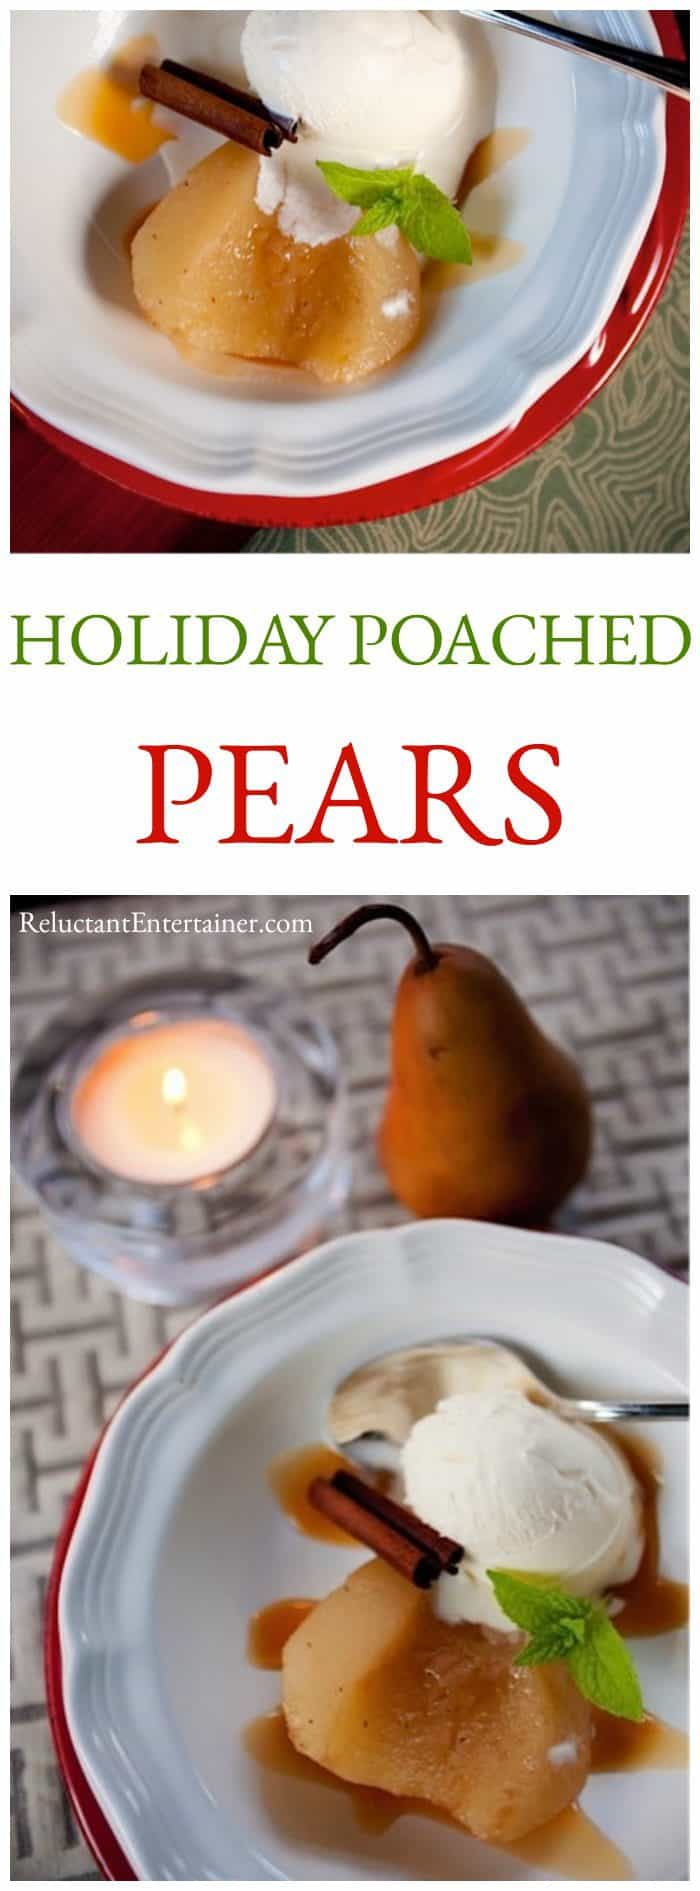 plated Holiday Poached Pears